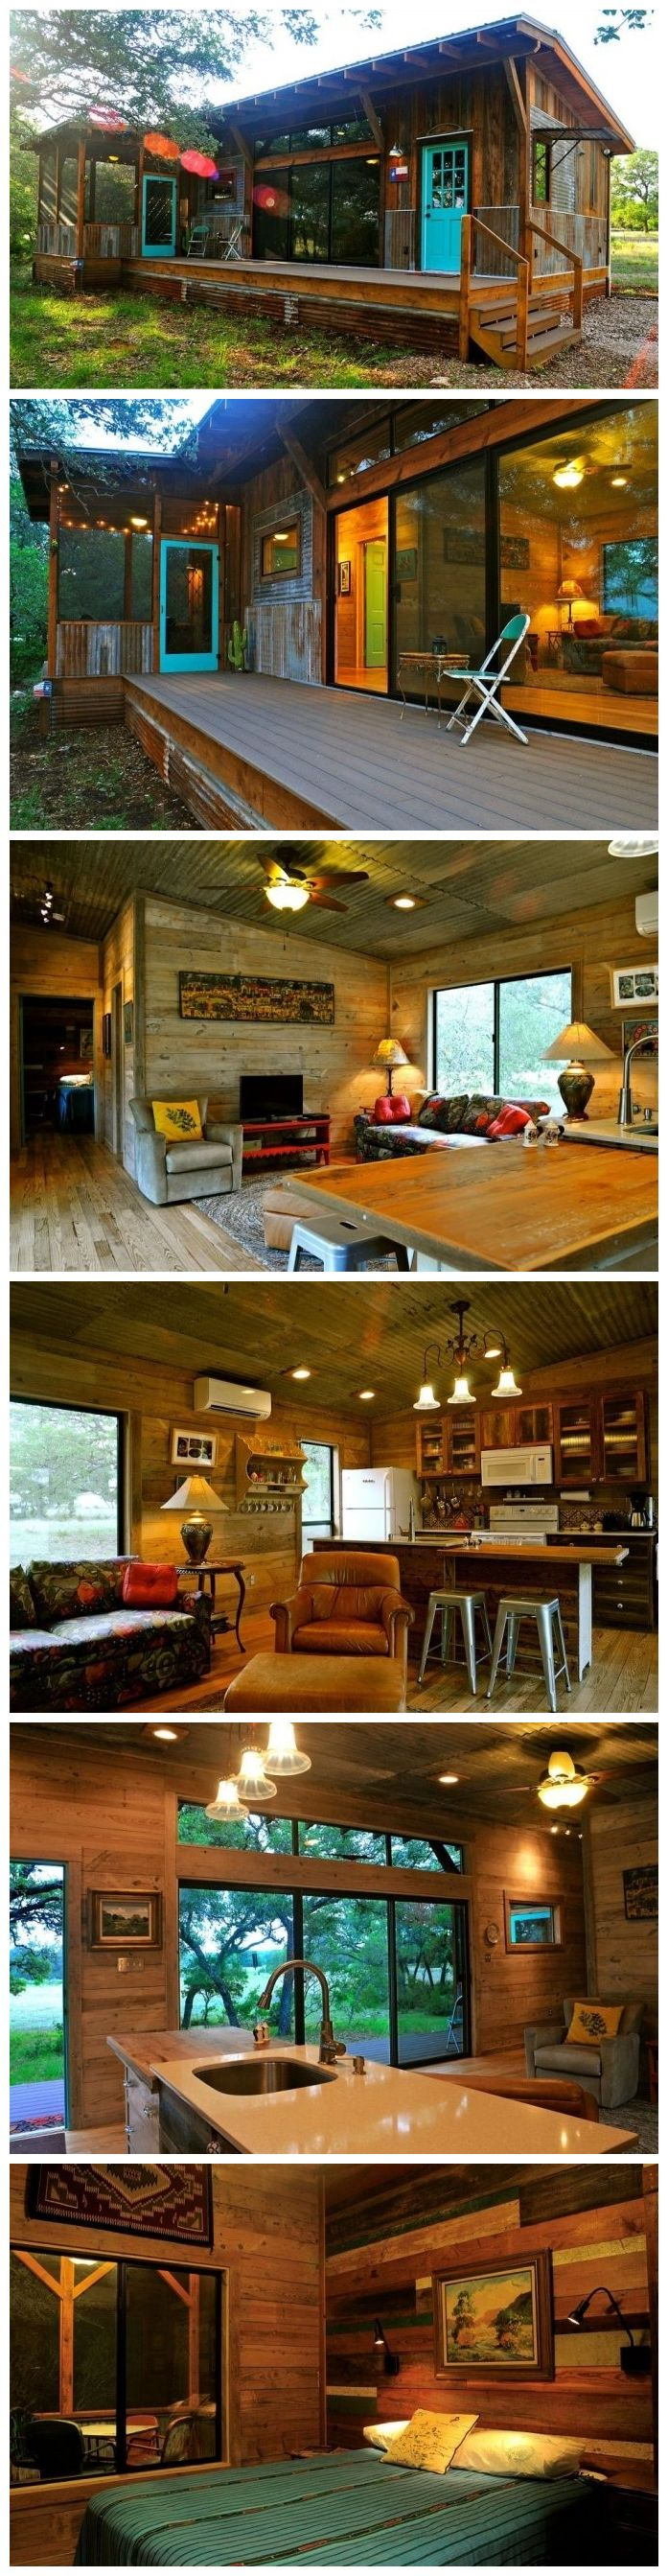 Cozy Cabin Made From Reclaimed Materials Of Old Barns